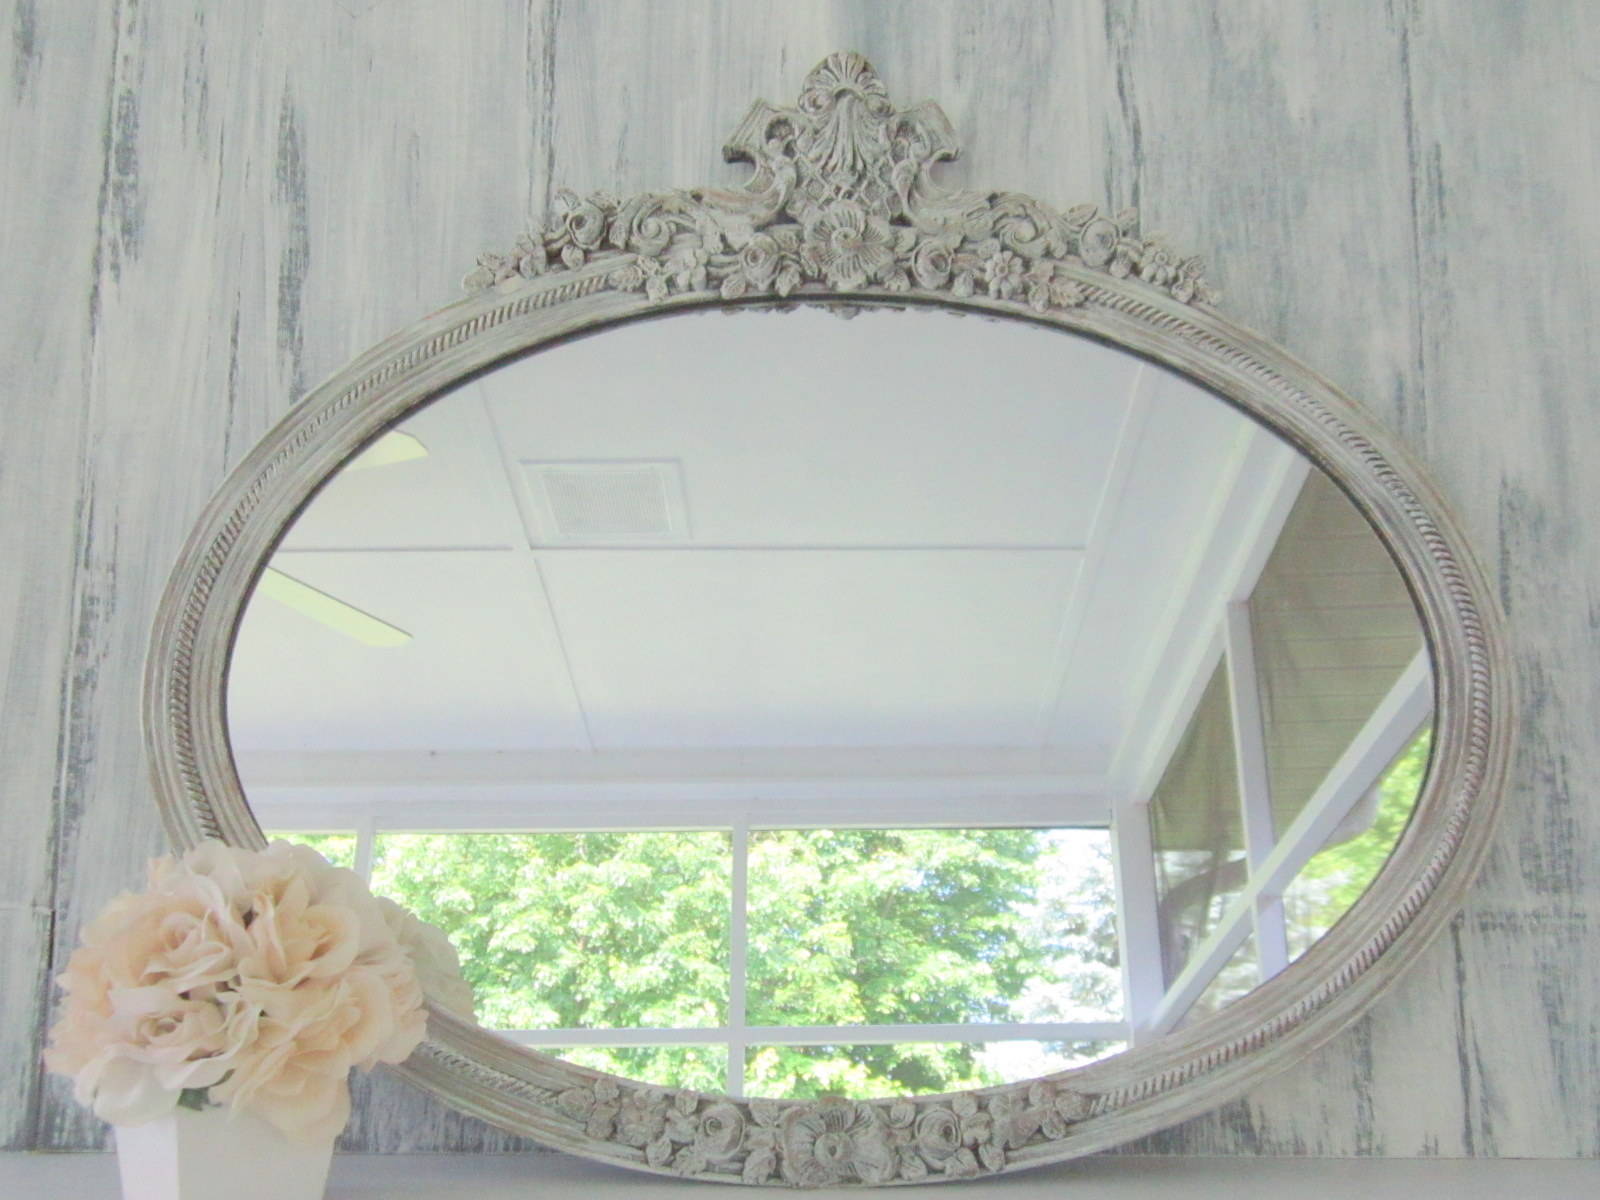 Revived vintage chalkboards antique mirrors for sale many antique vintage mirrors to choose from for Vintage bathroom mirrors sale